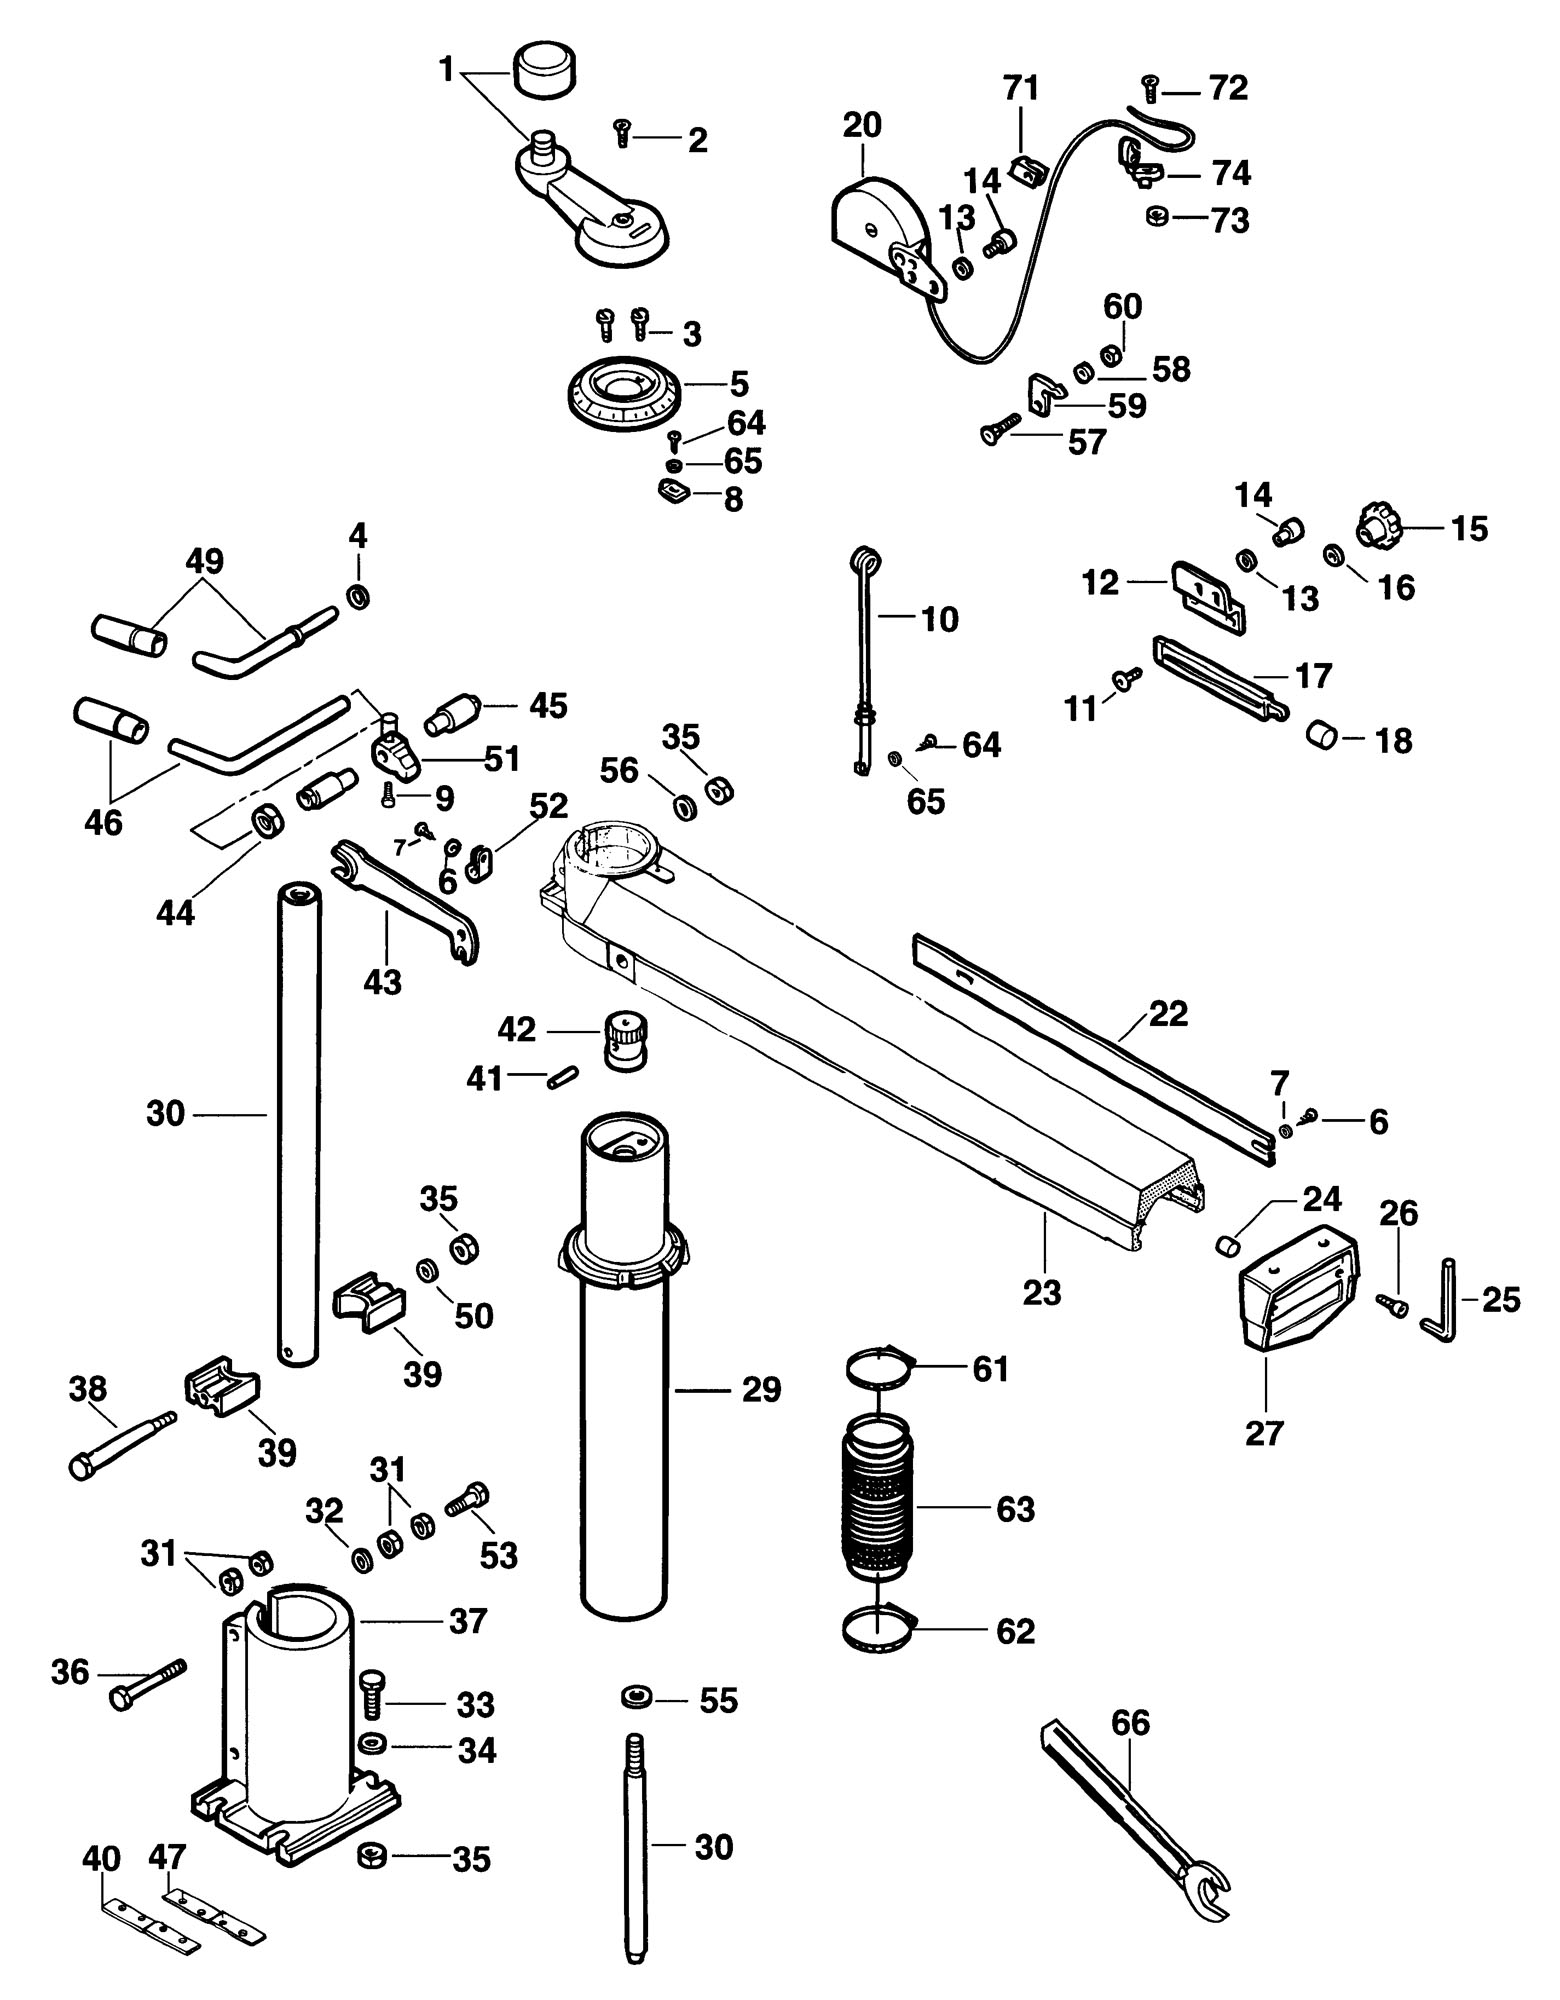 Radial arm saw diagramlta 670 table saw wiring diagram wiring craftsman 10 table saw wiring diagram spares for elu ras8001 greentooth Image collections